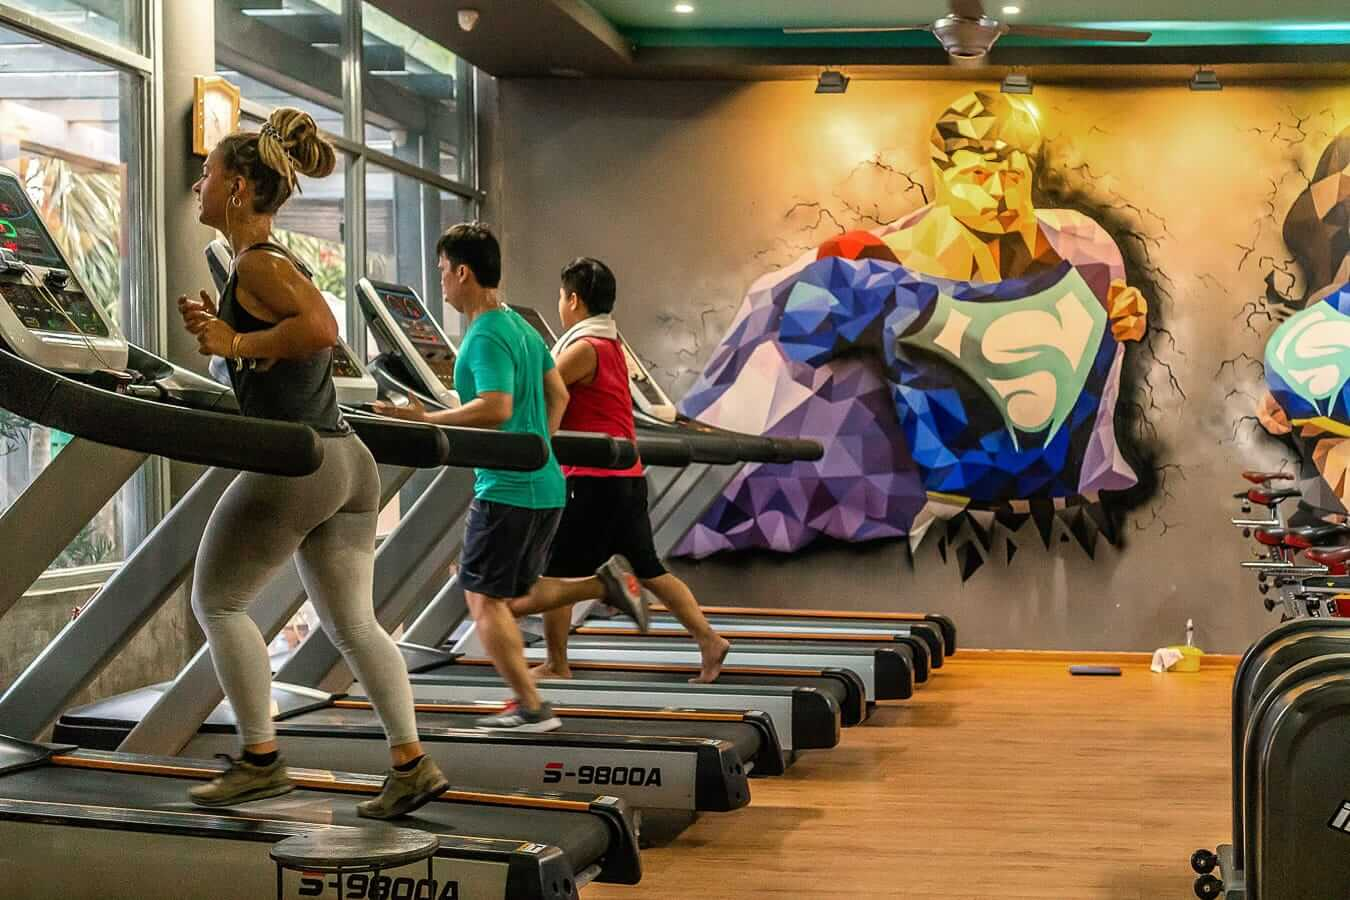 Superfit: gyms in Hoi An